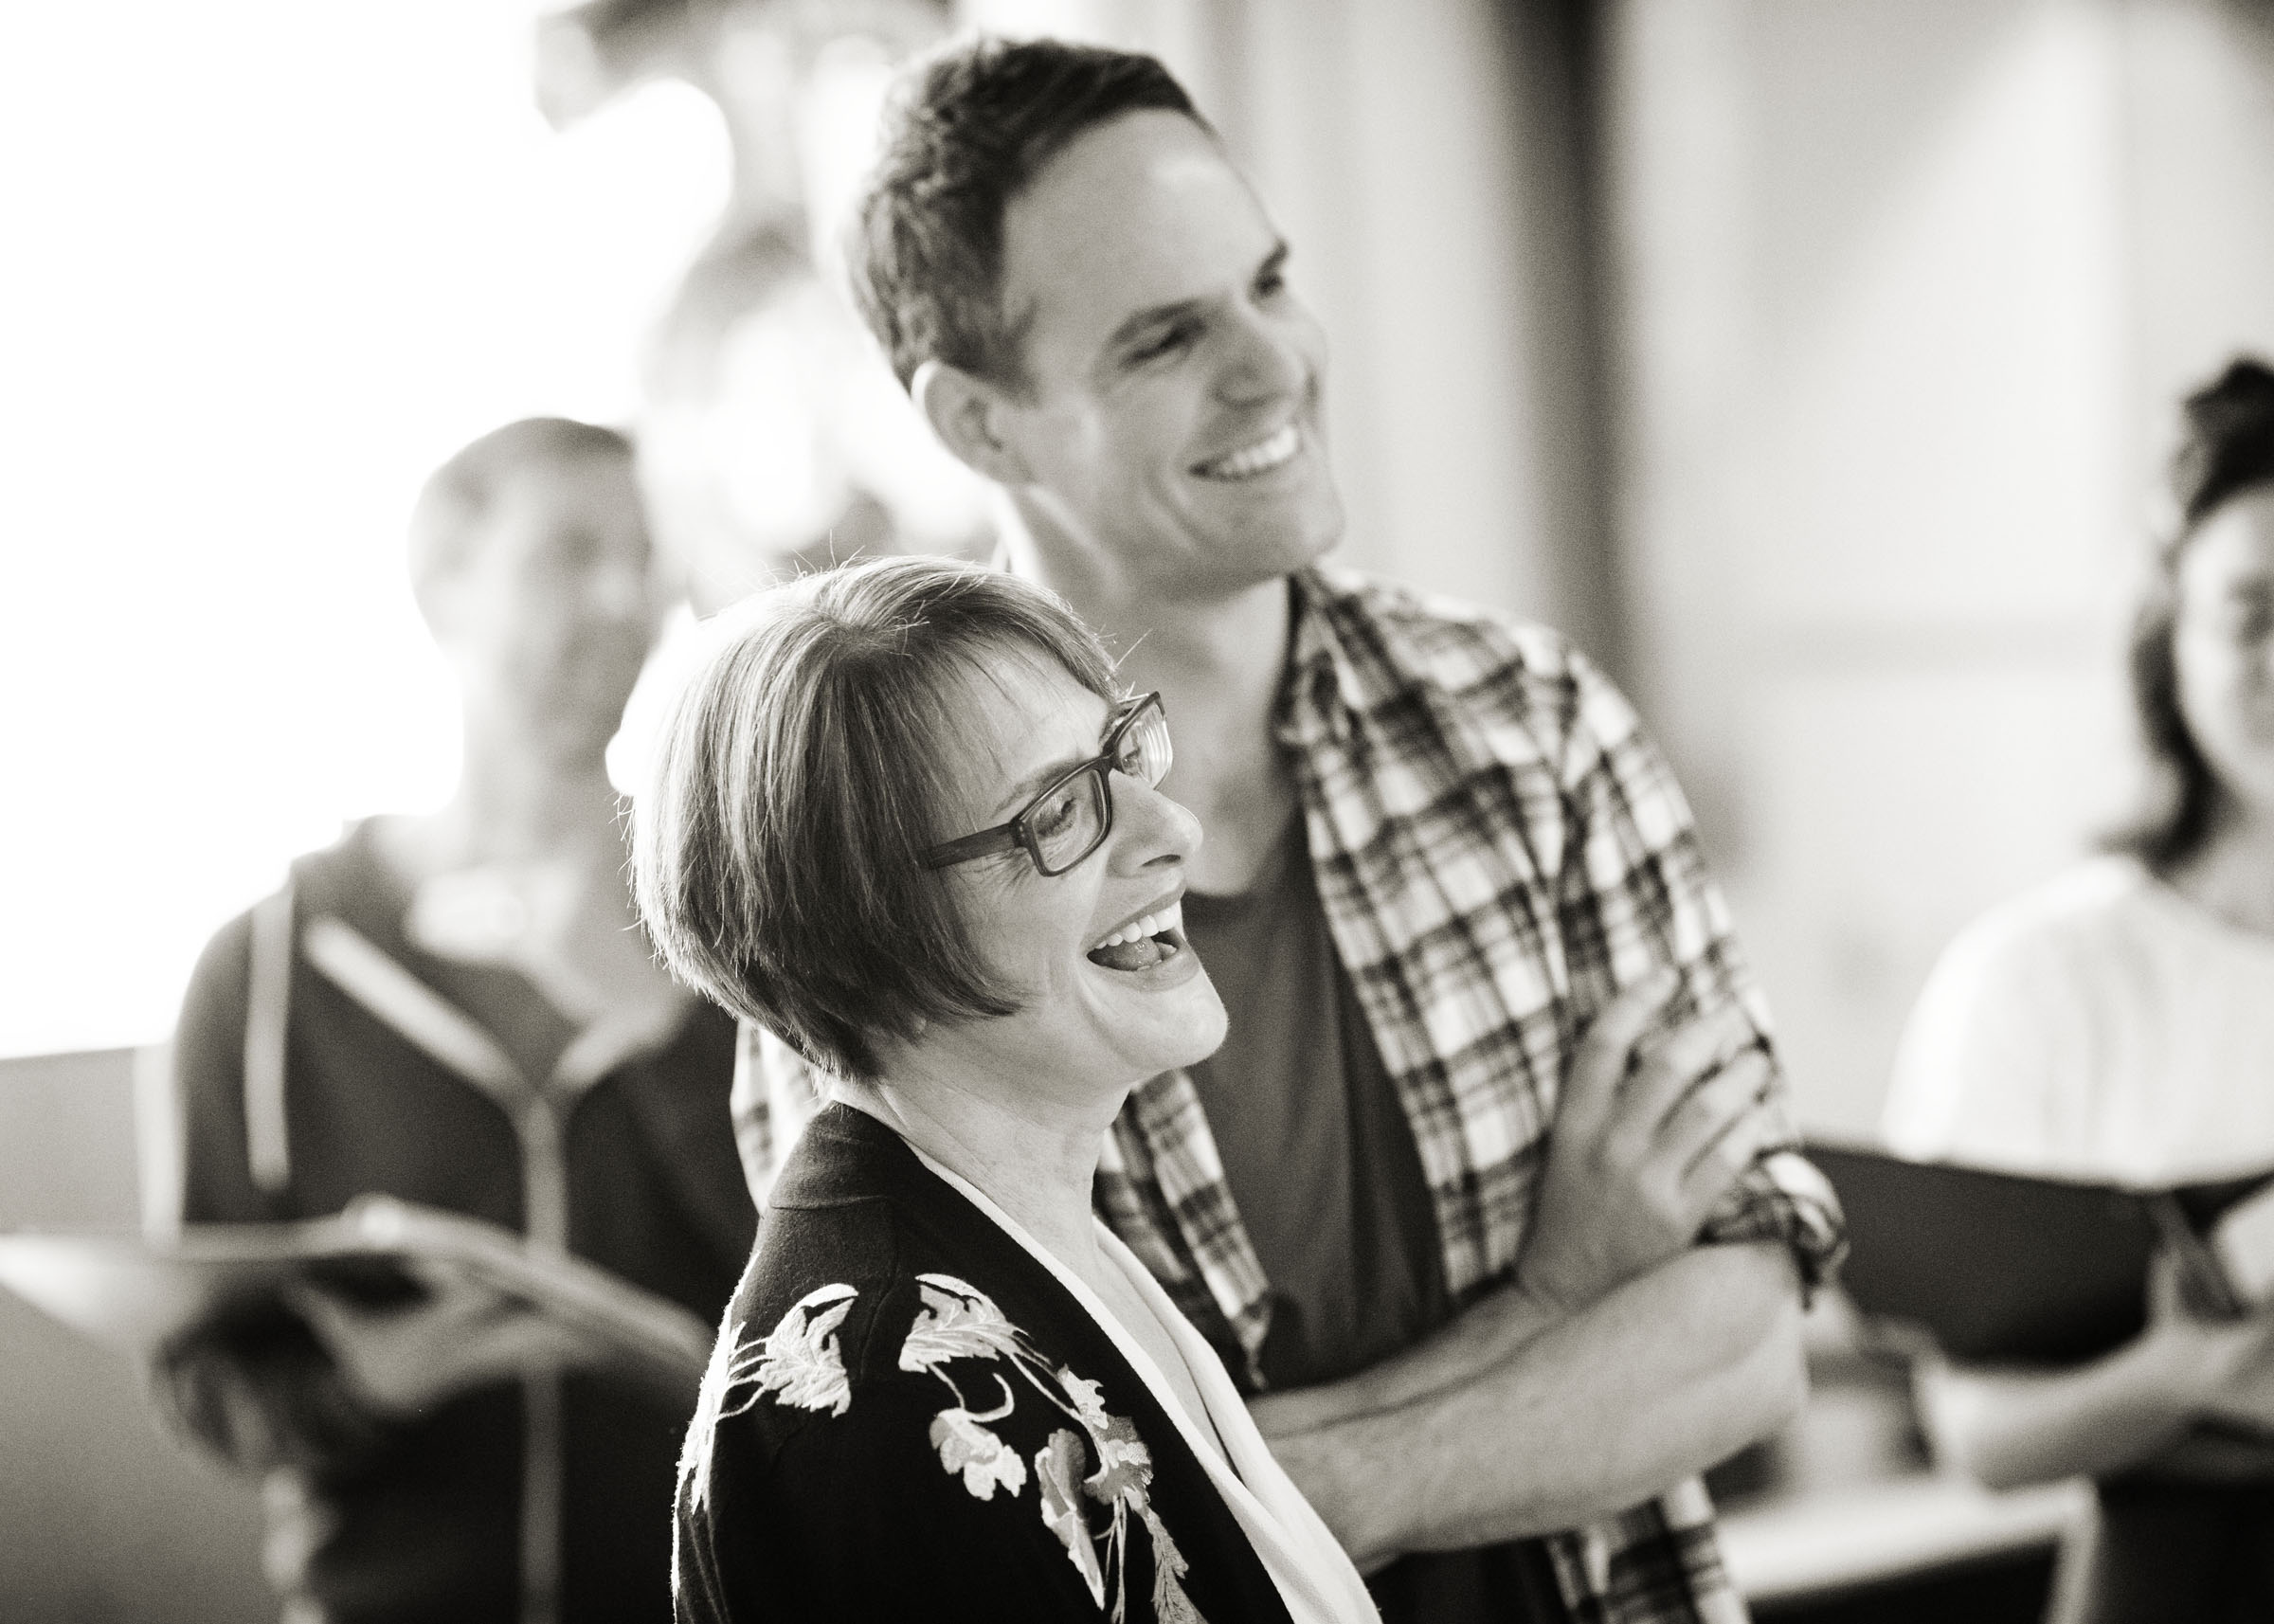 Ben Hewis and Patti LuPone sharing a laugh during rehearsals